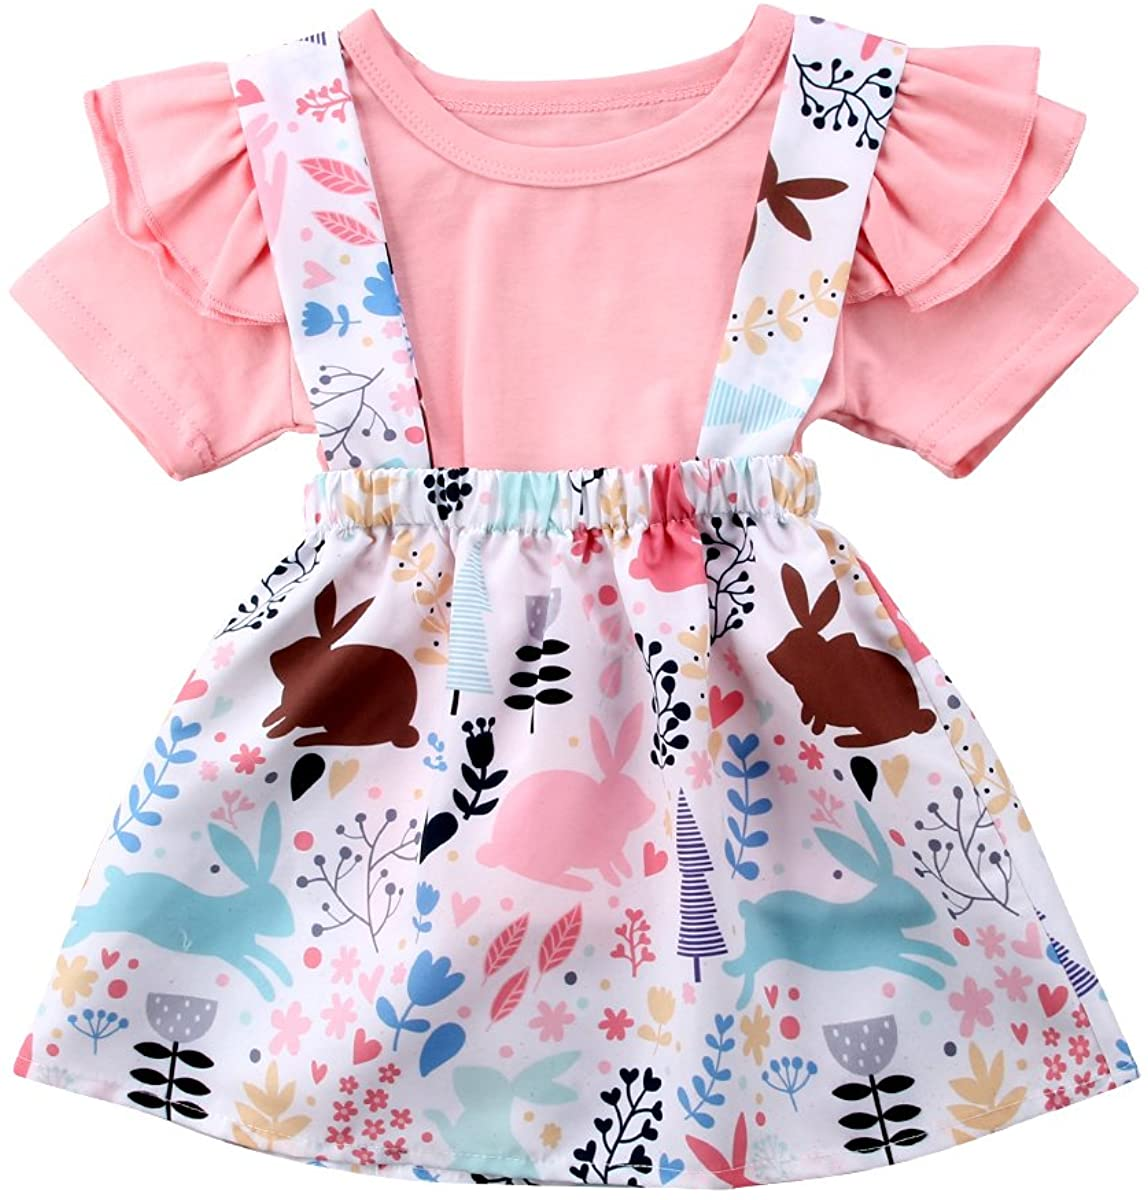 Baby Girl Clothes Skirt Ruffle Short Sleeves Top Bunny Print Floral Suspender Tutu Dress Outfits Set